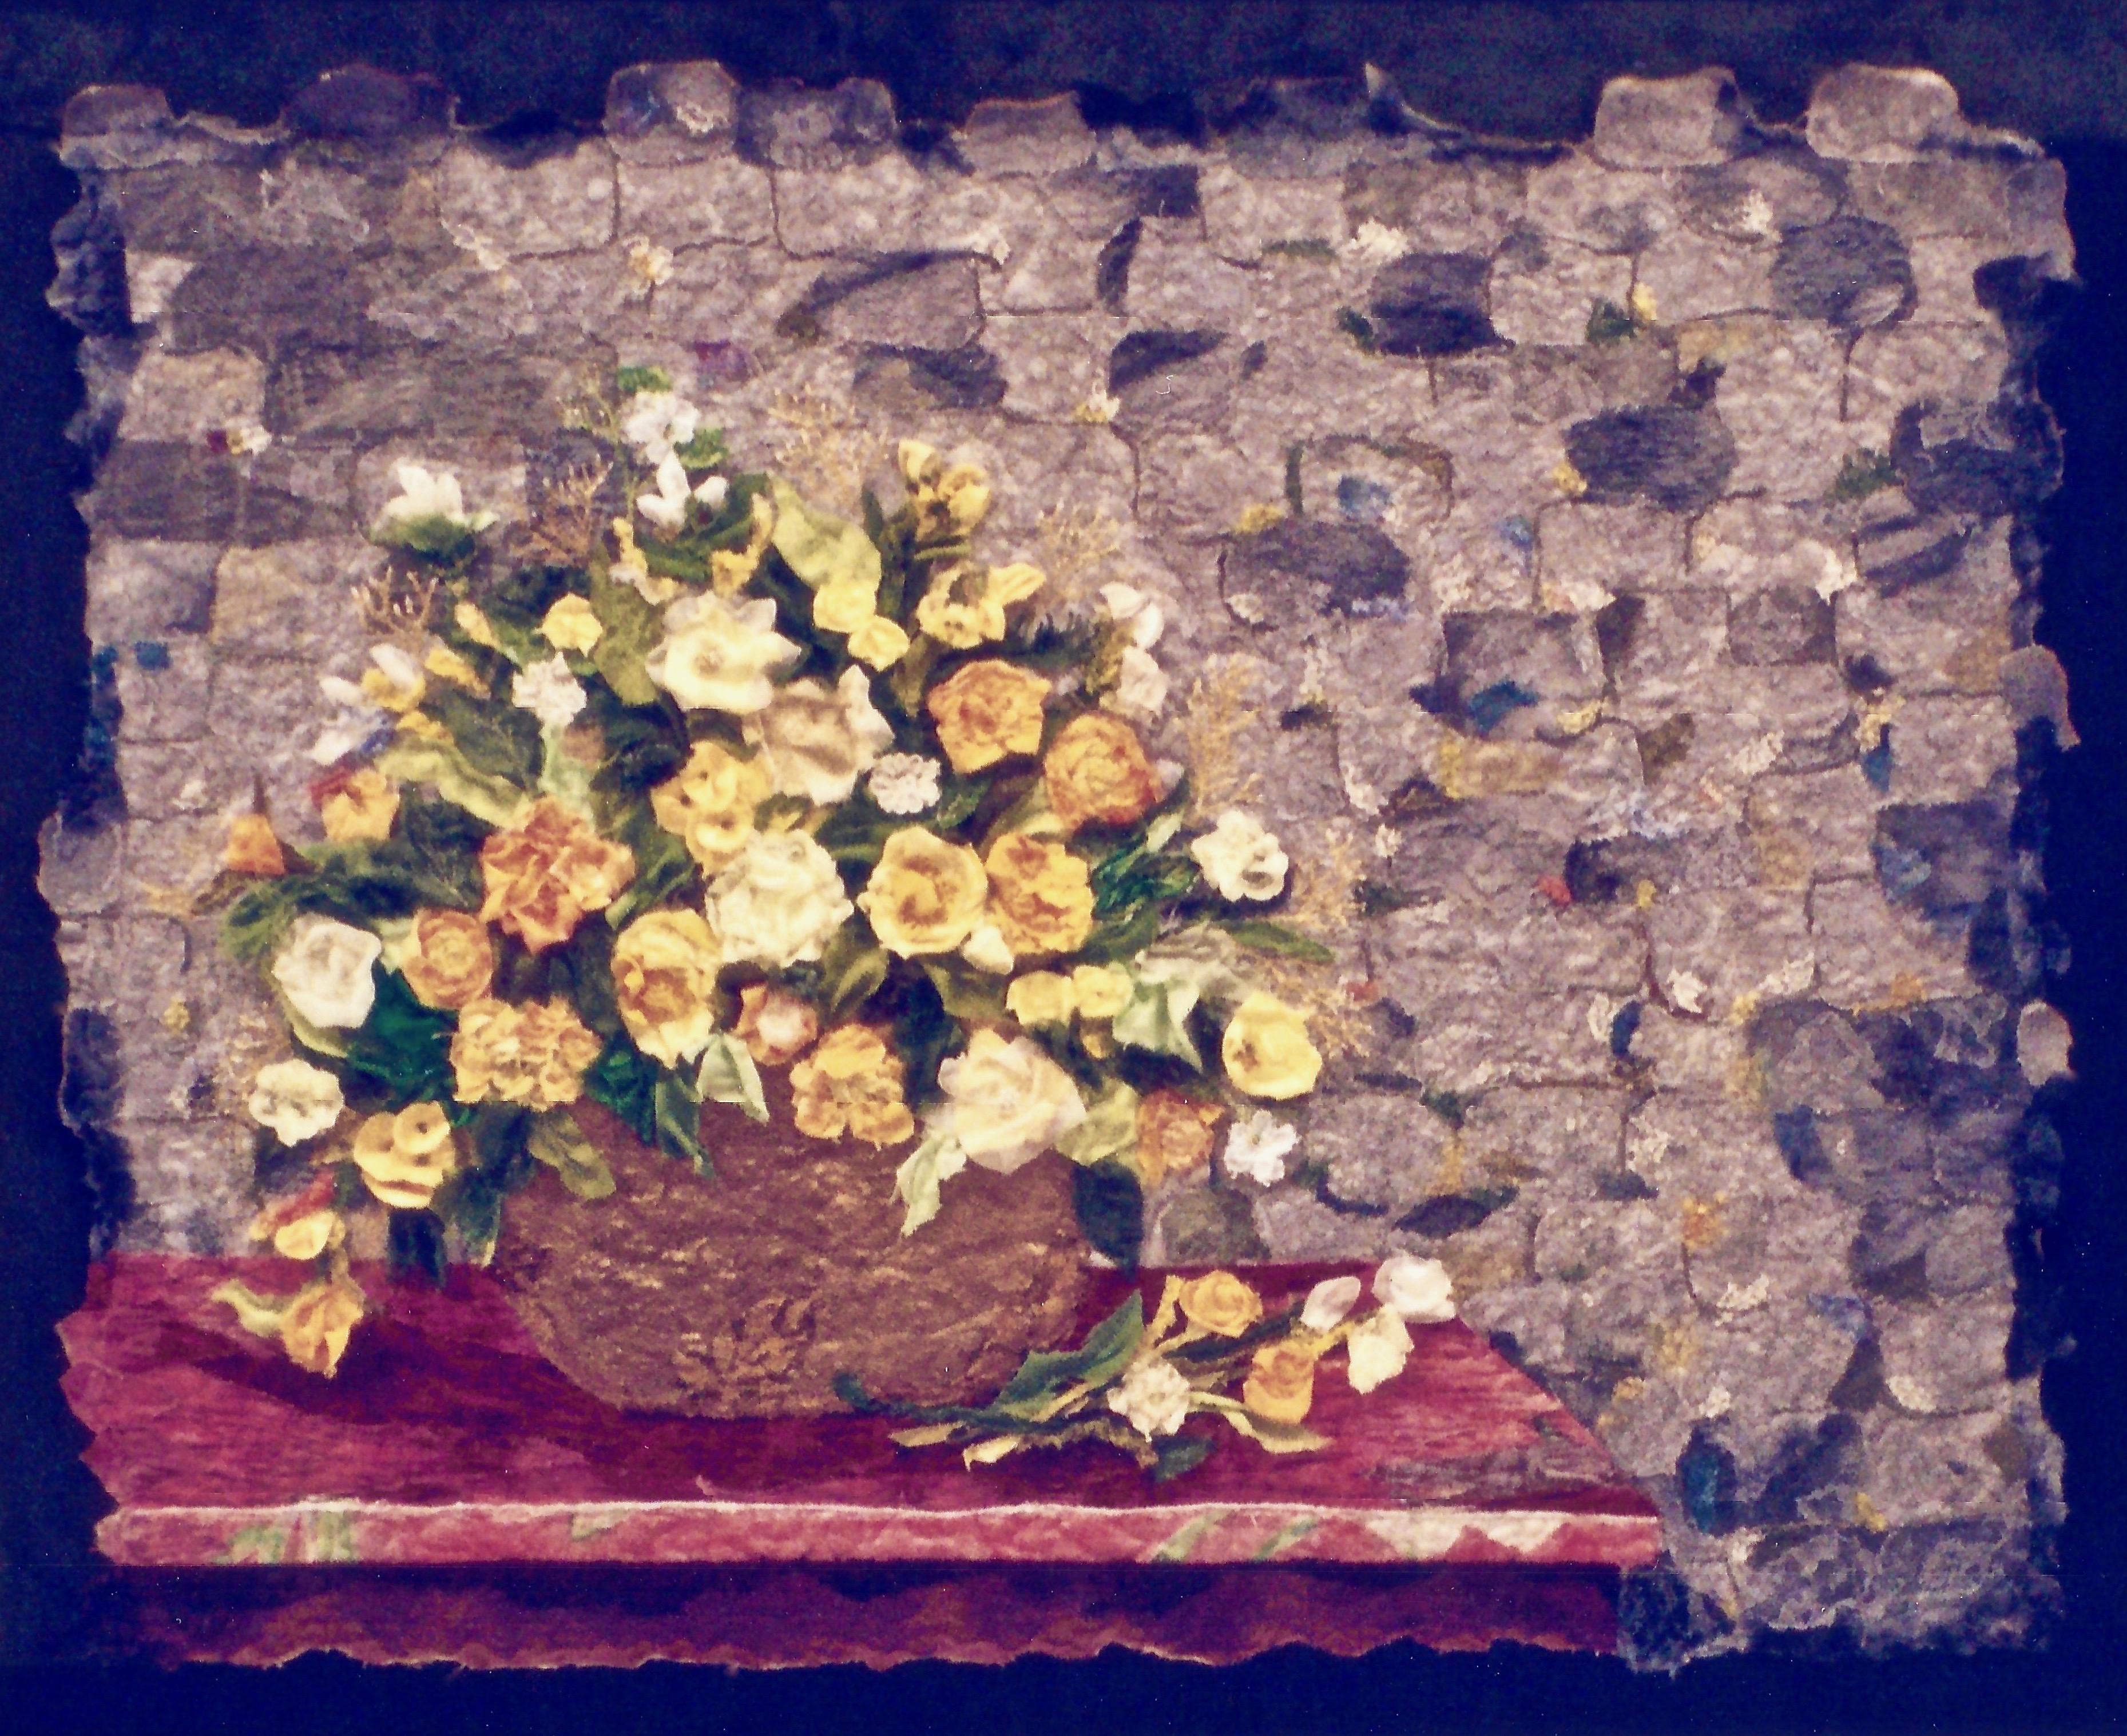 Brass Vase, Stone Wall and Flowers